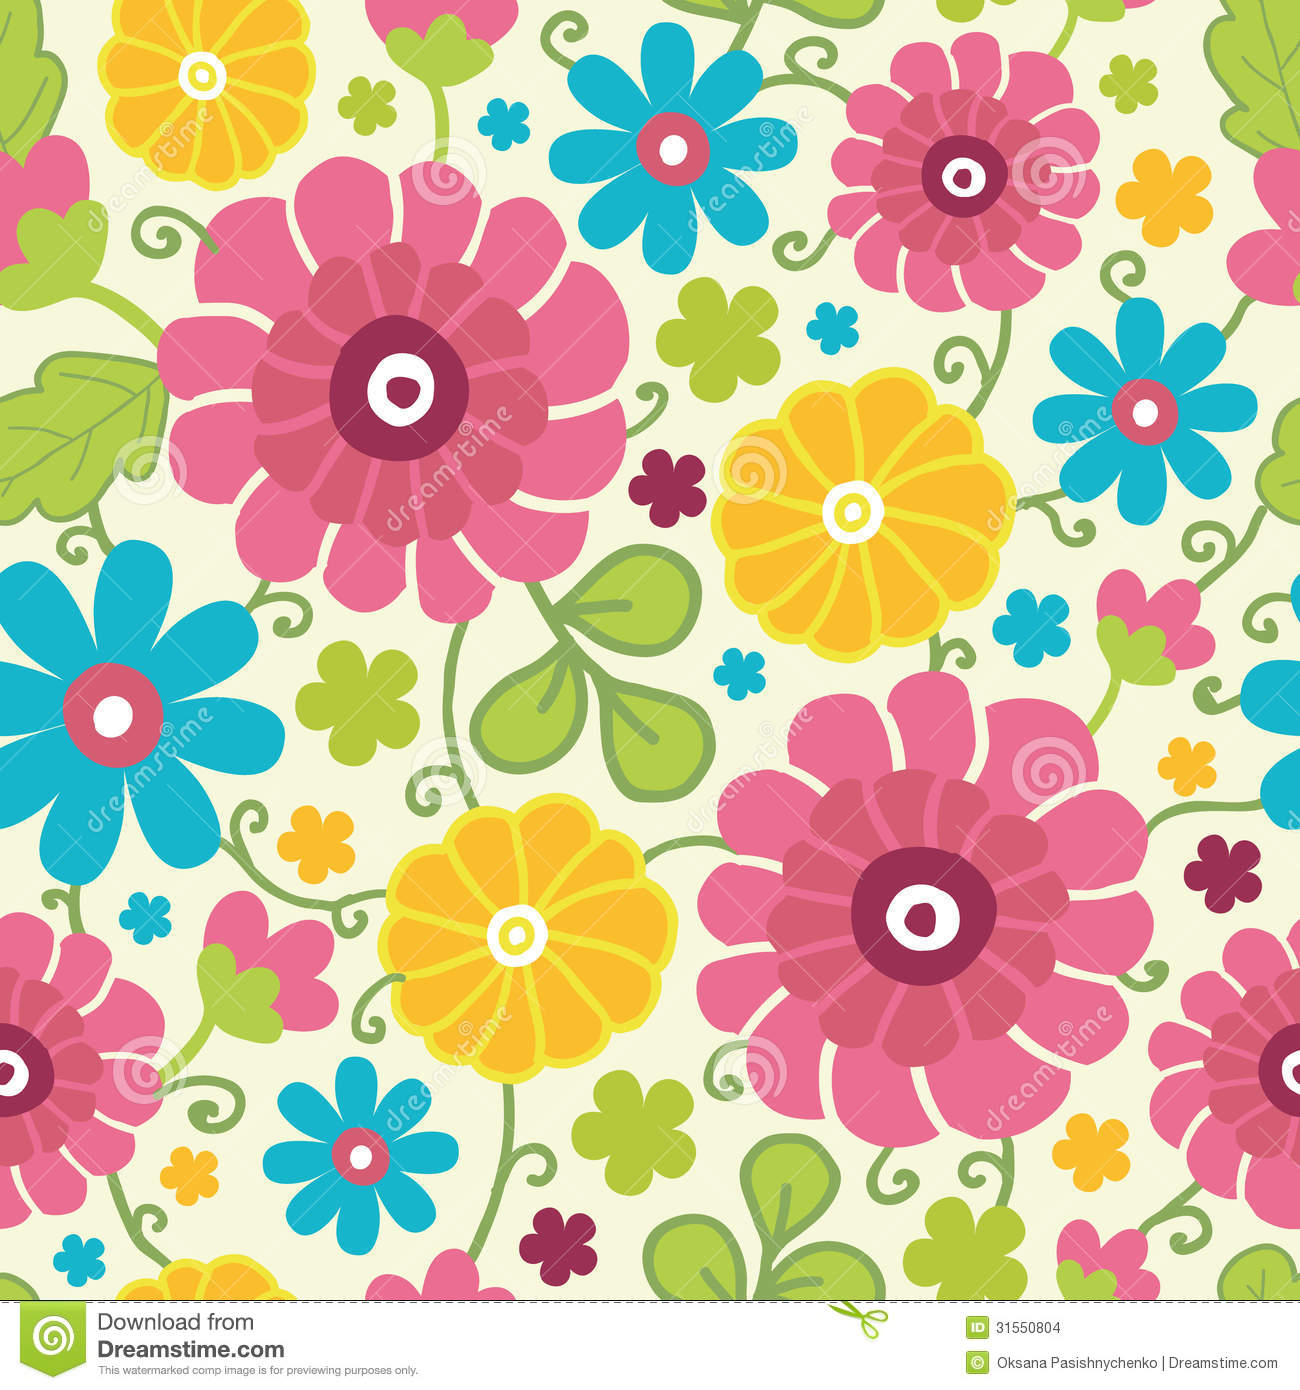 colorful floral background patterns - photo #37